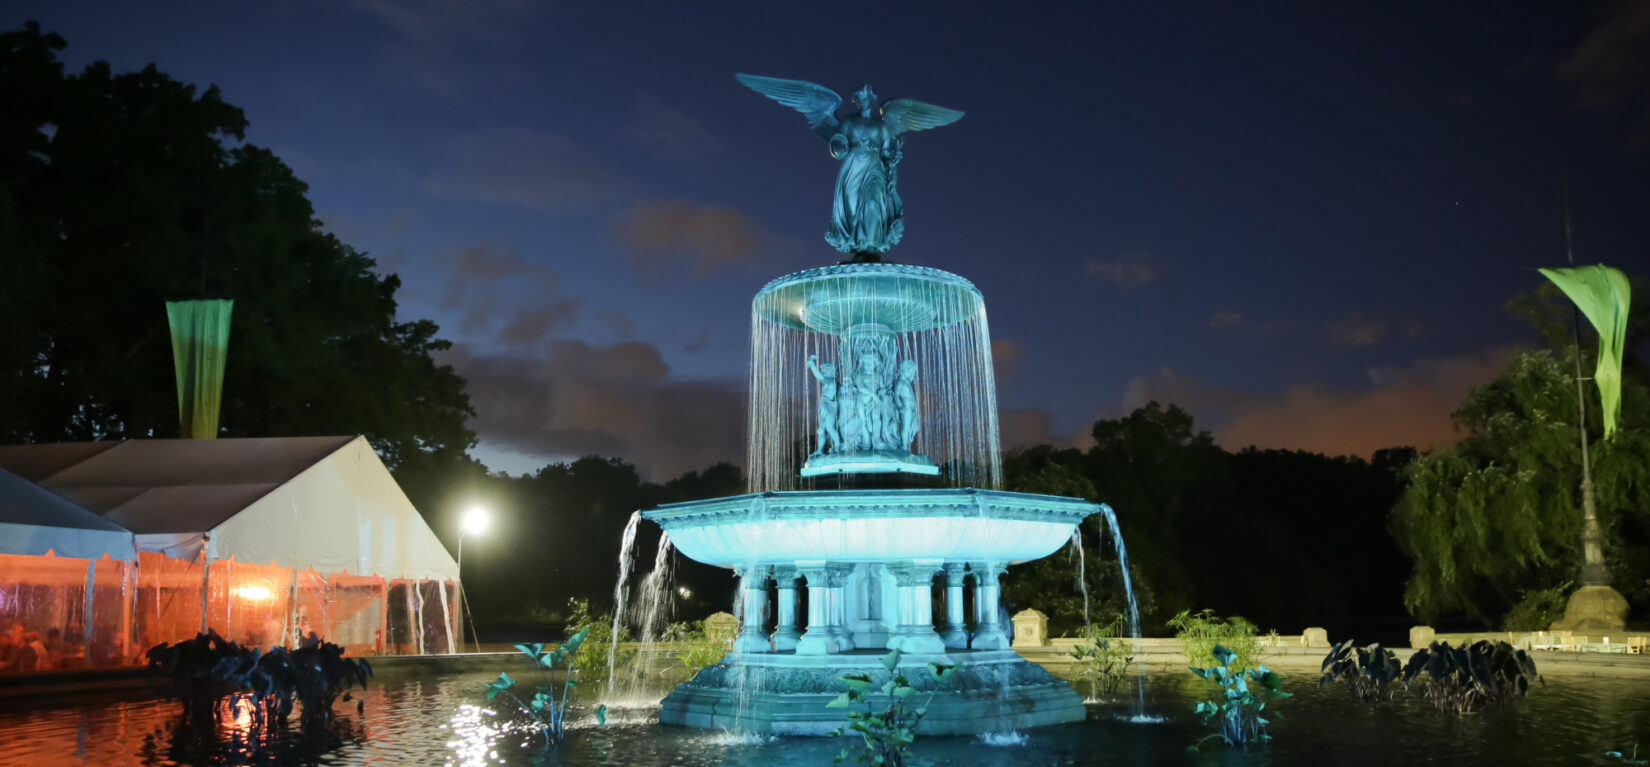 Bethesda Fountain pictured with dramatic lighting at night